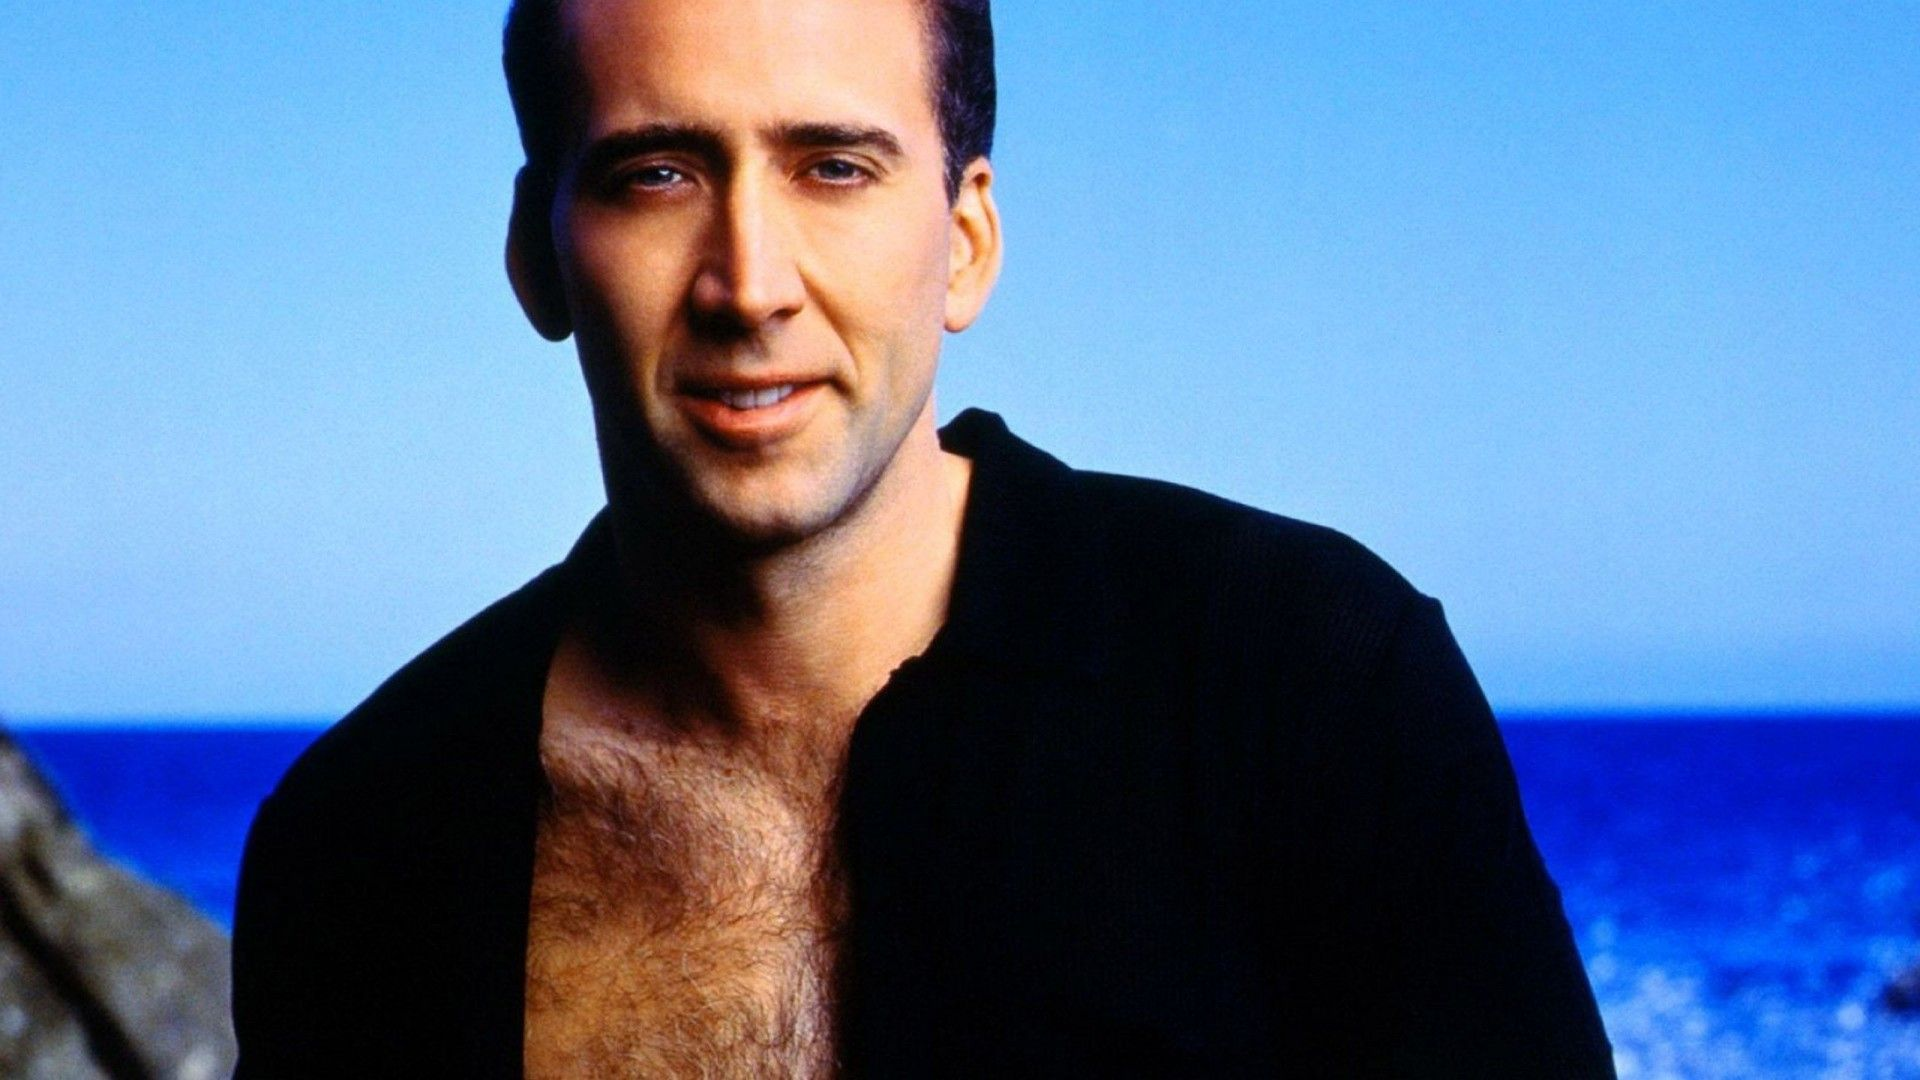 Nicolas Cage Wallpapers High Resolution And Quality Download Nicolas Cage Custom Pillow Cases Nicolas